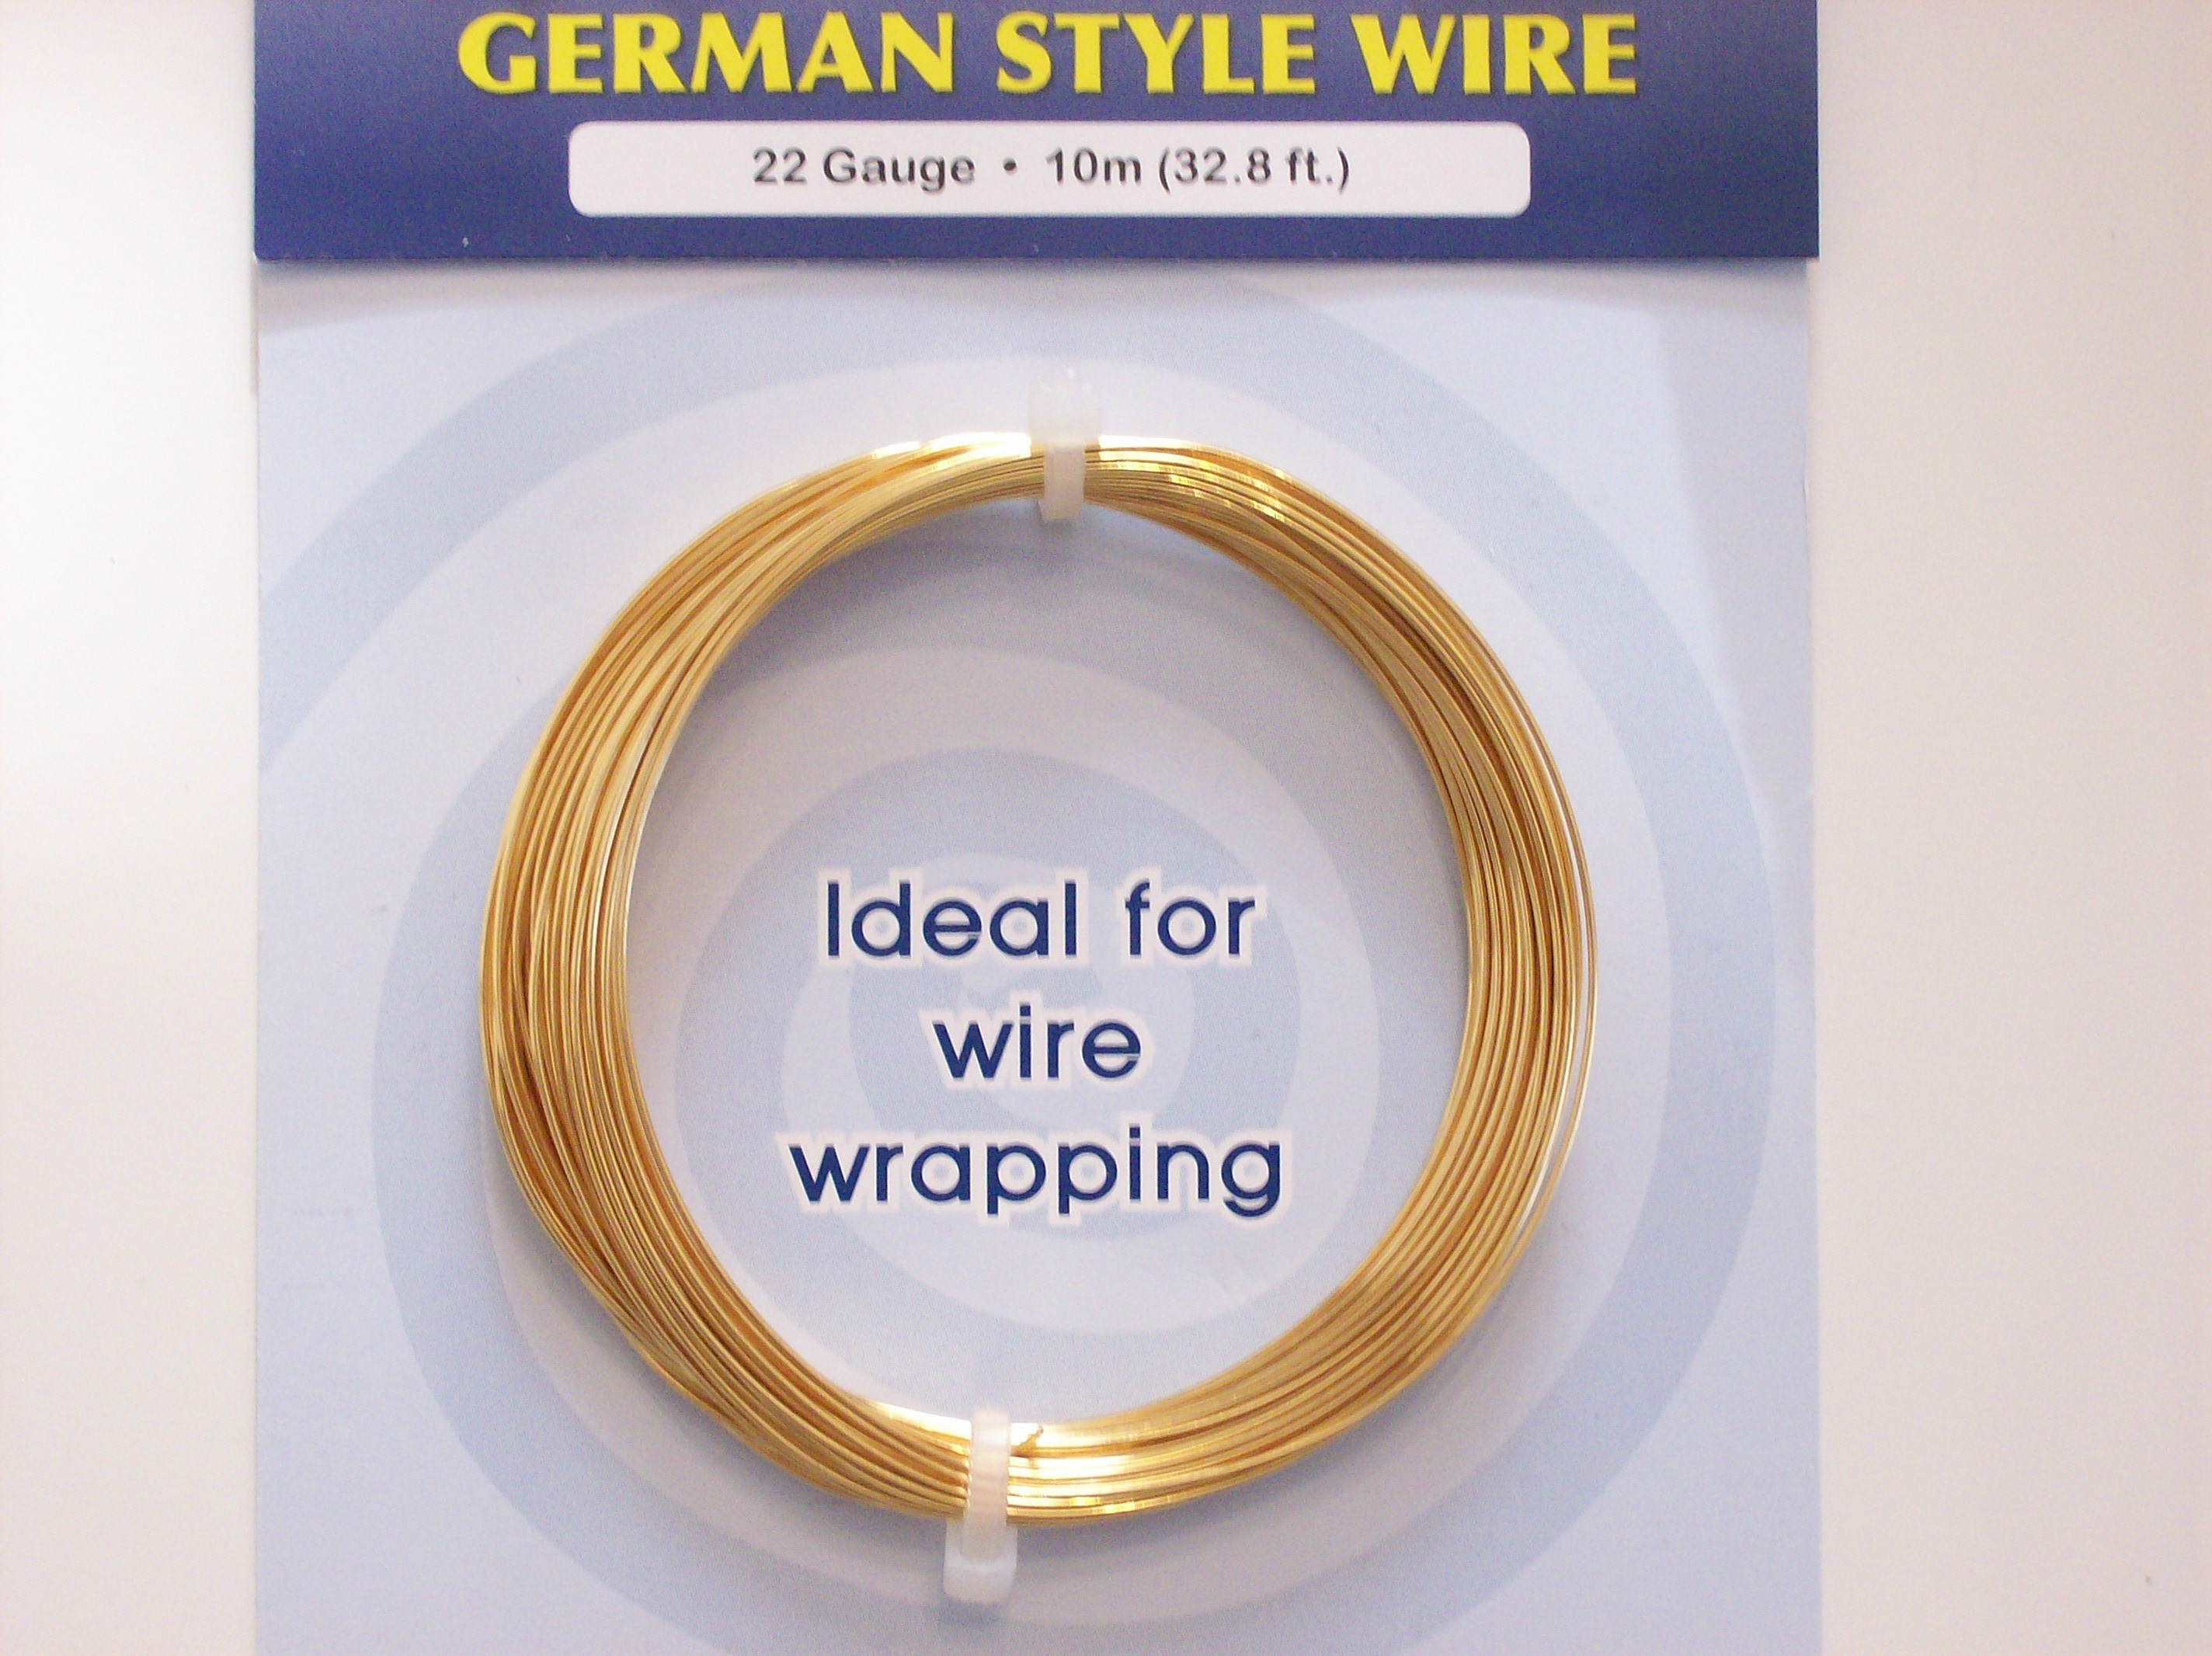 German Style Wire Gold Plated Color Coded 22 Gauge Wires 100 3106